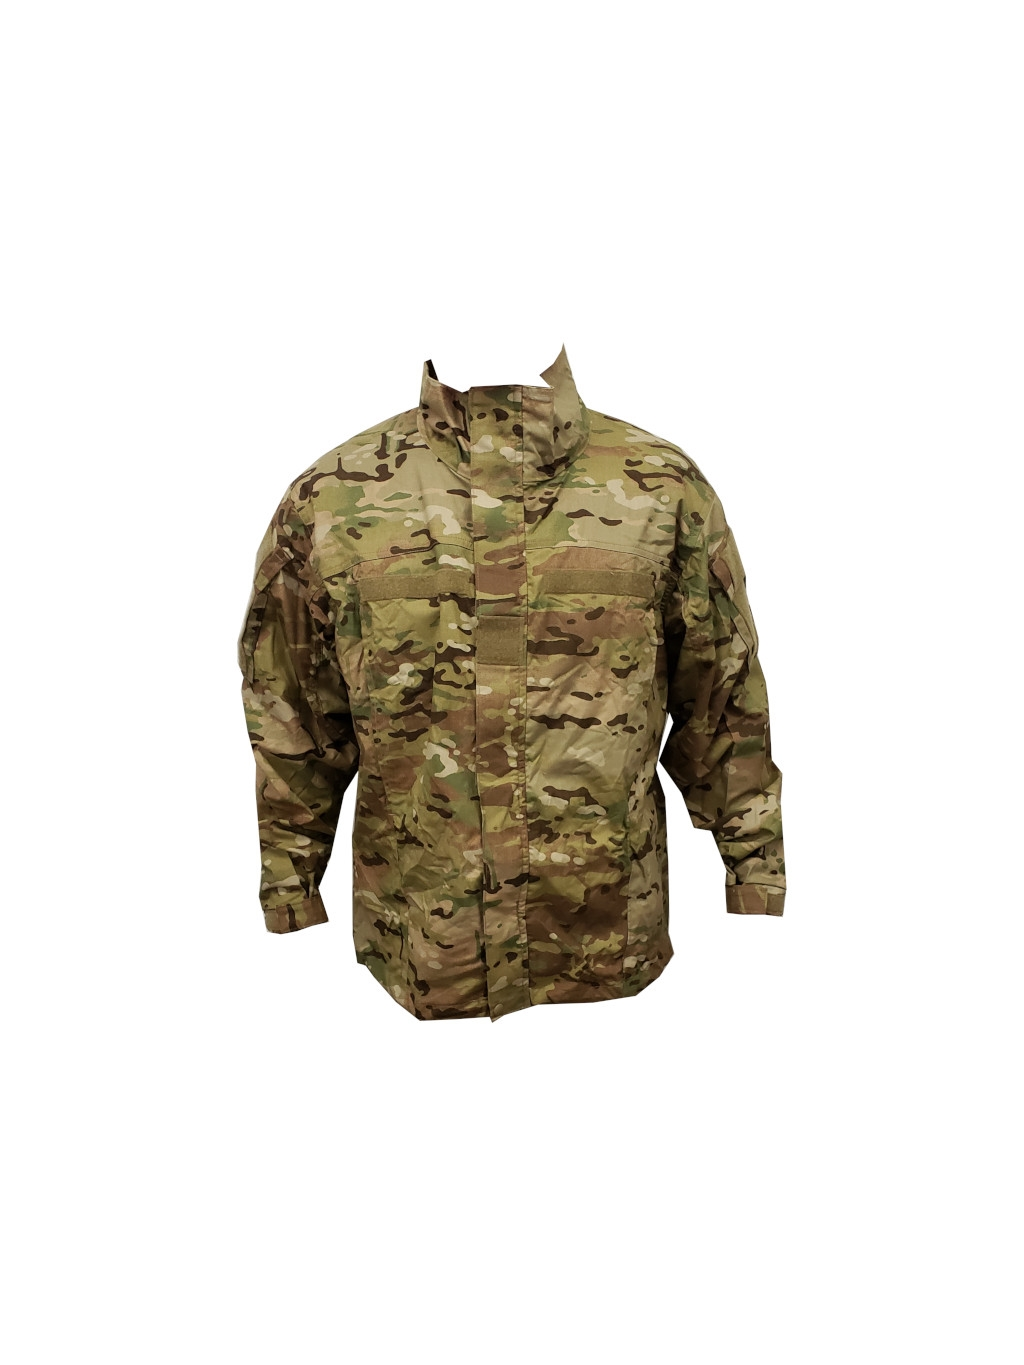 GEN III FR Soft Shell / Cold Weather Jacket -OCP - ECWCS Level 5 Fire Resistant NO HOOD